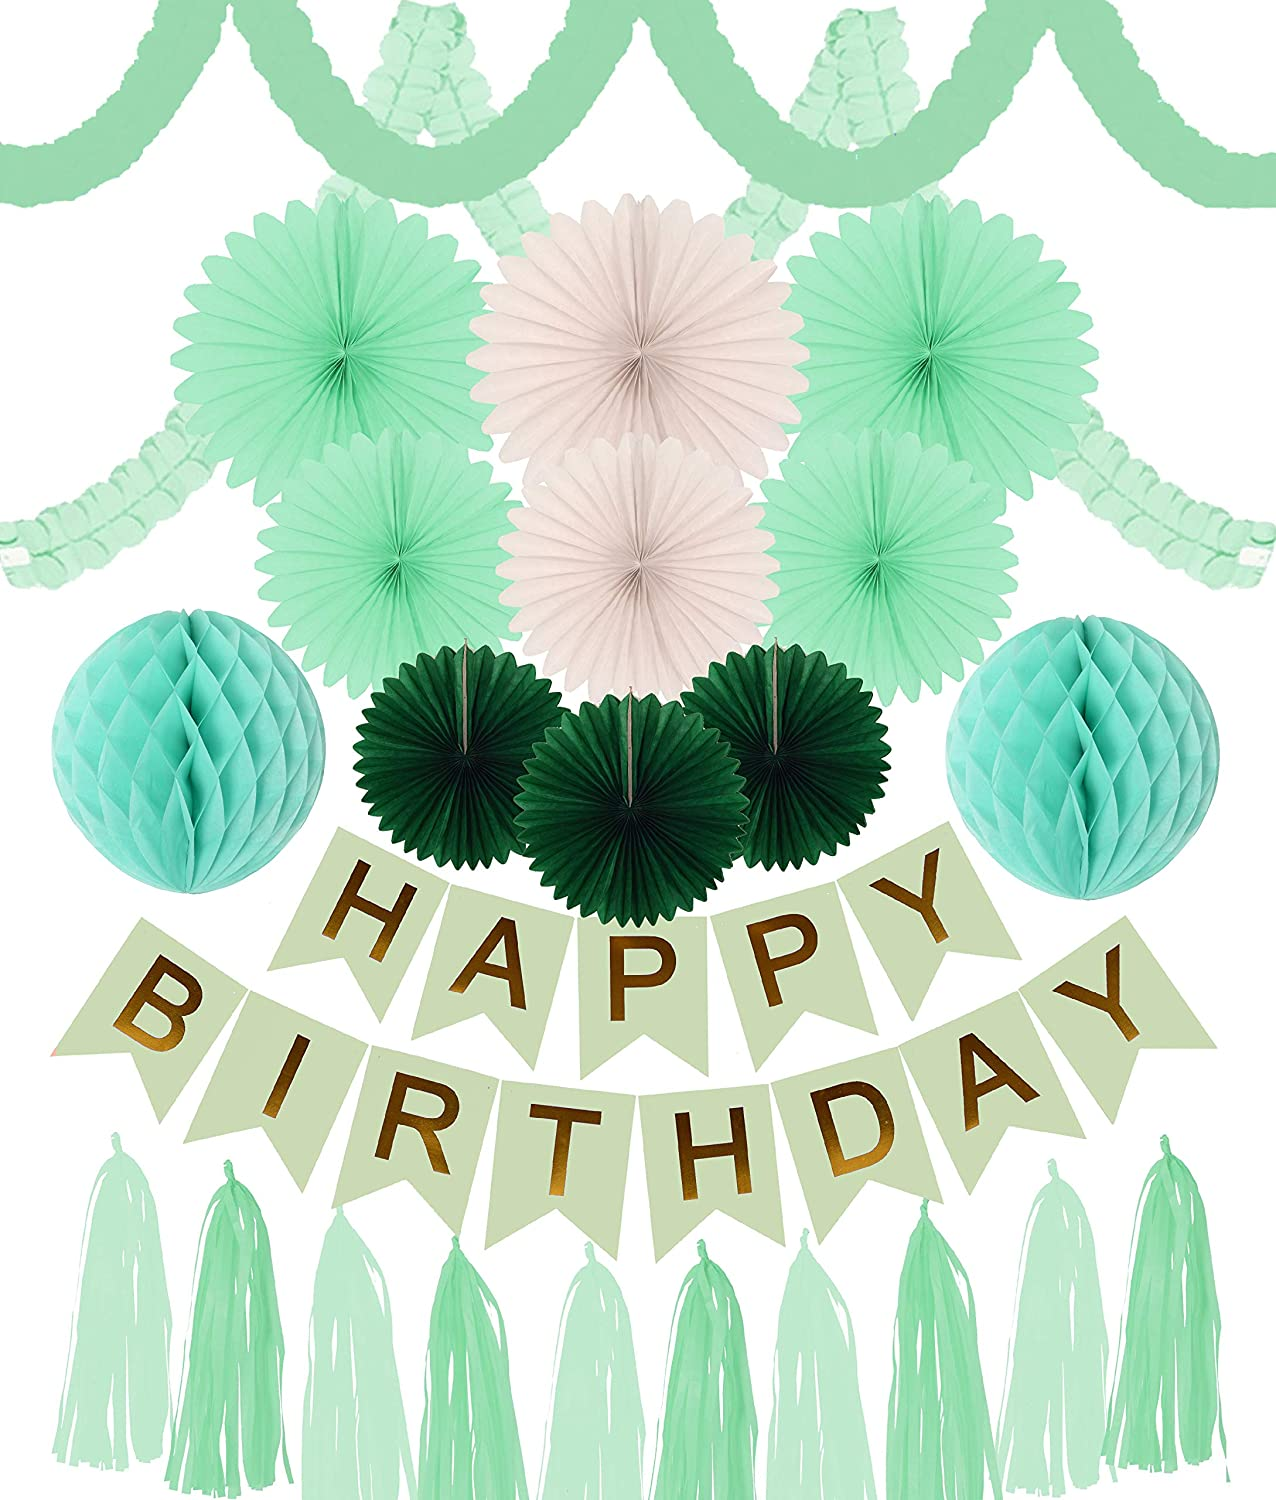 Green Birthday Decoration- Green and Gold Happy Birthday Banner - Dinosaur Garland - Green and Gold Party Decoration- Mint Green Party Kit - Birthday Party Decor for Adults and Kids by Meant2ToBe